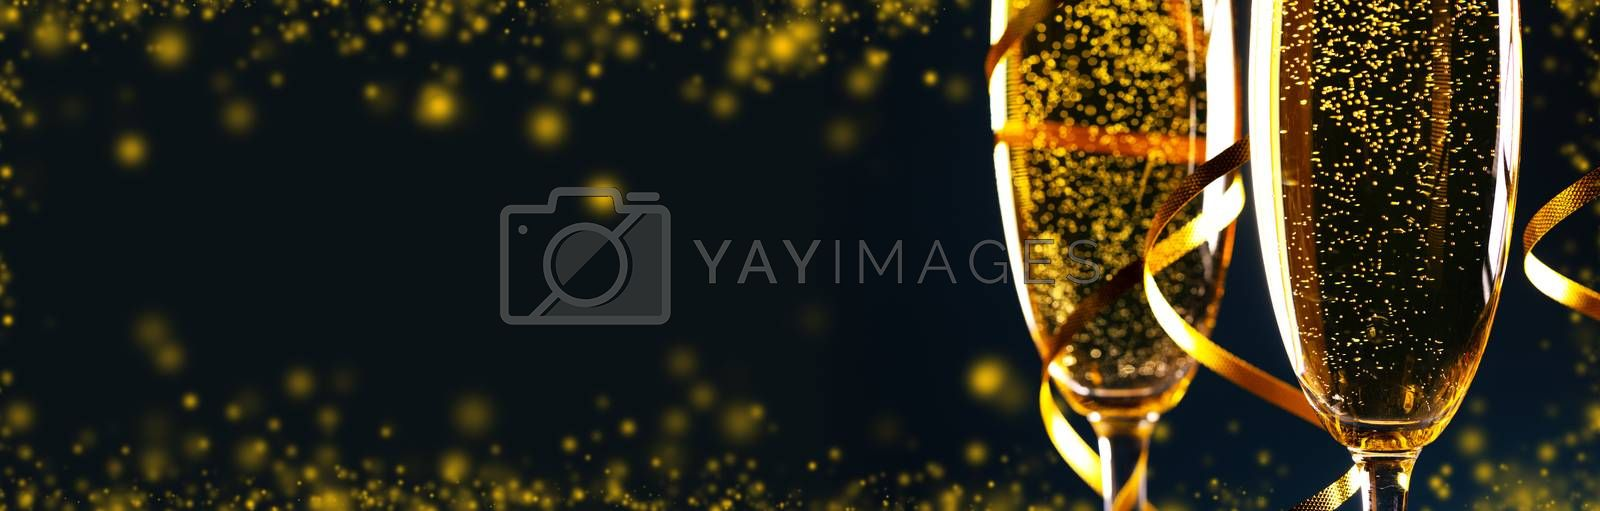 Champagne glasses with golden ribbon on black background with copy space - new year holiday celebration